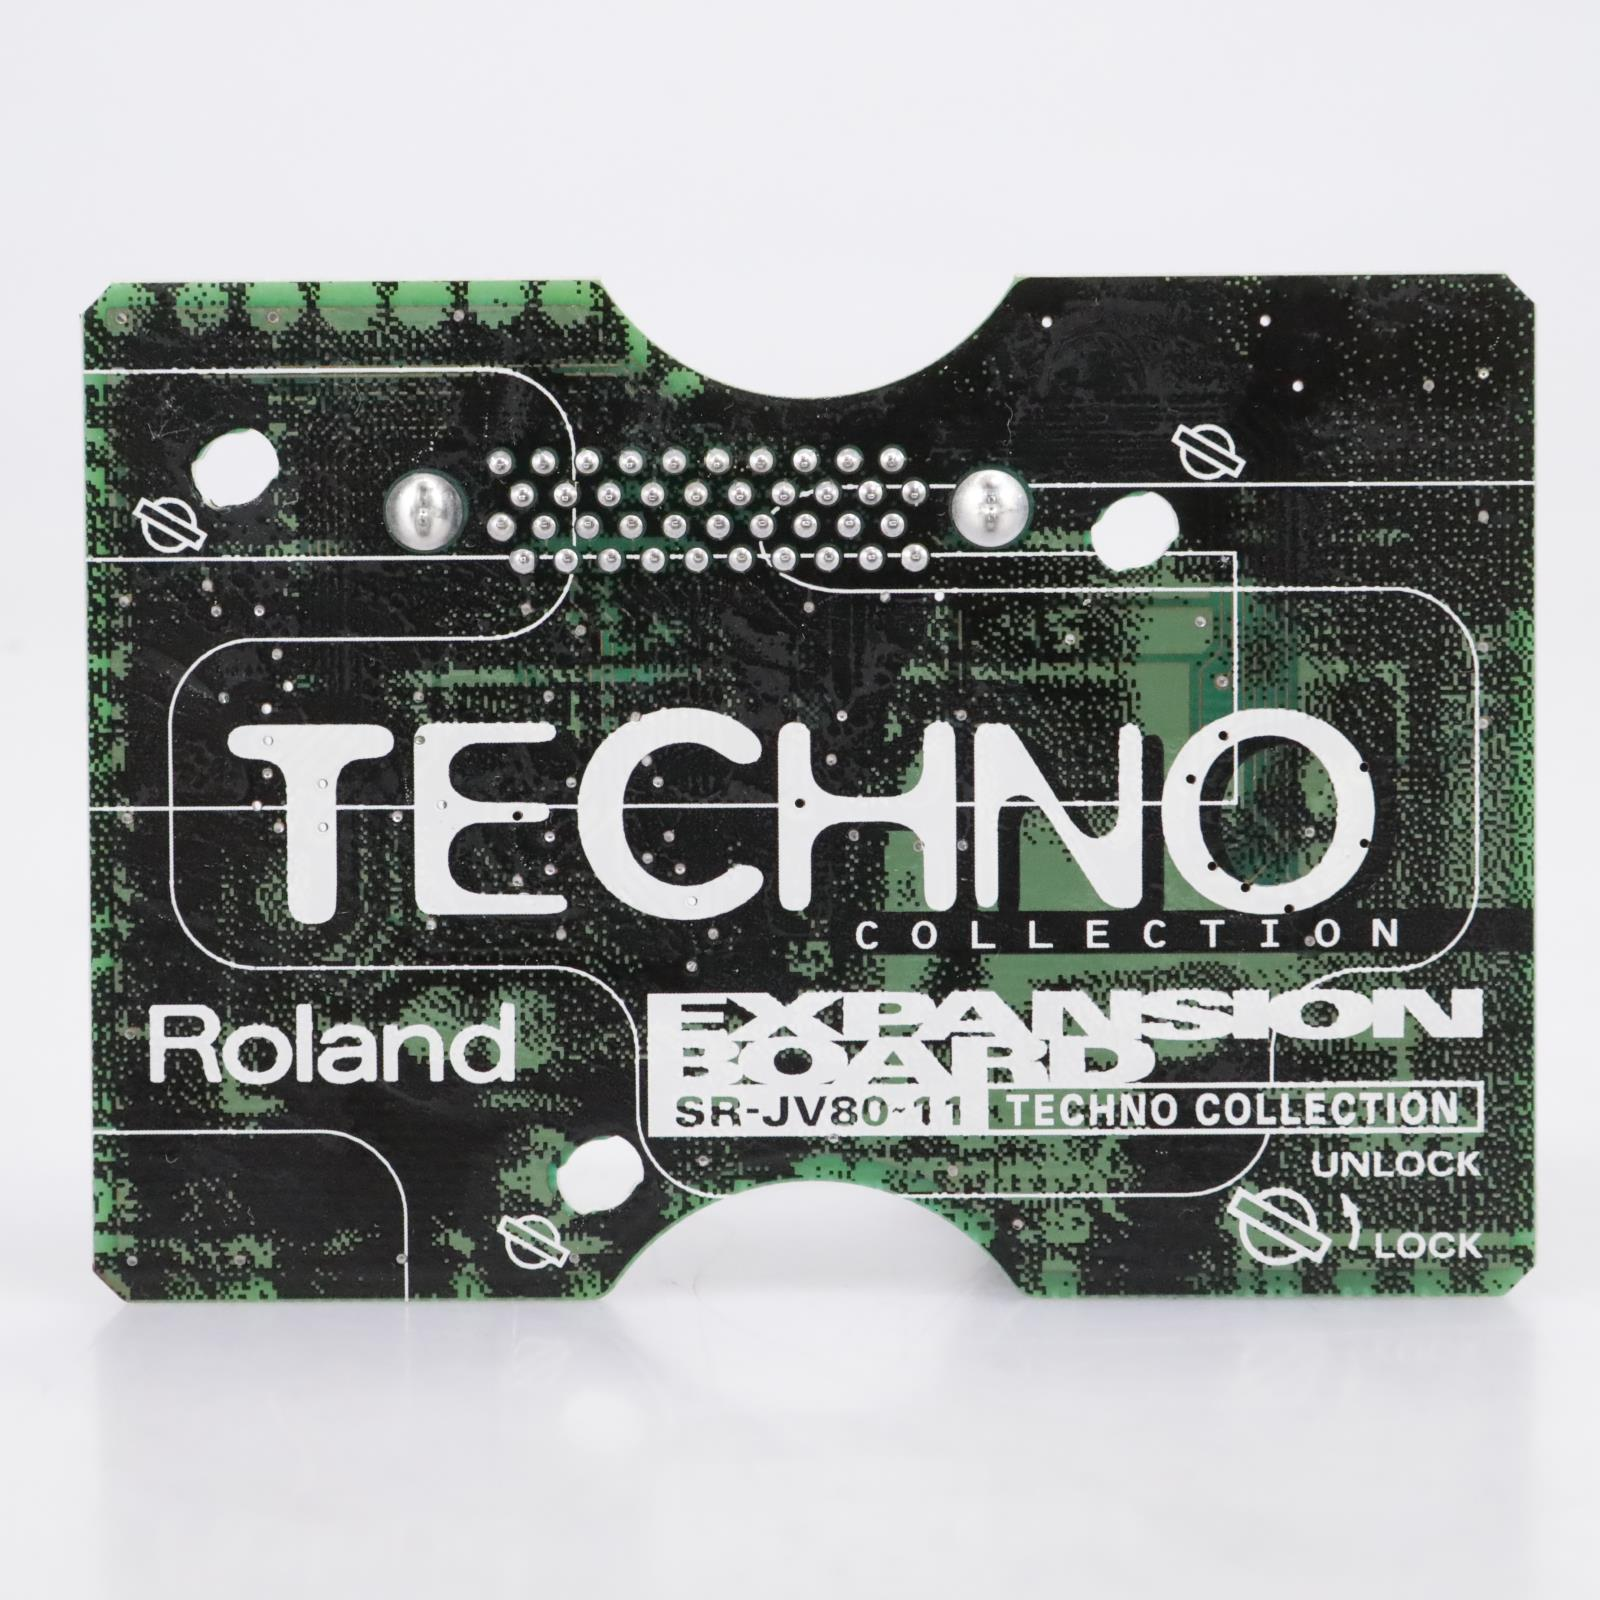 Roland SR-JV80-11 Techno Collection Synthesizer Expansion Board #43713